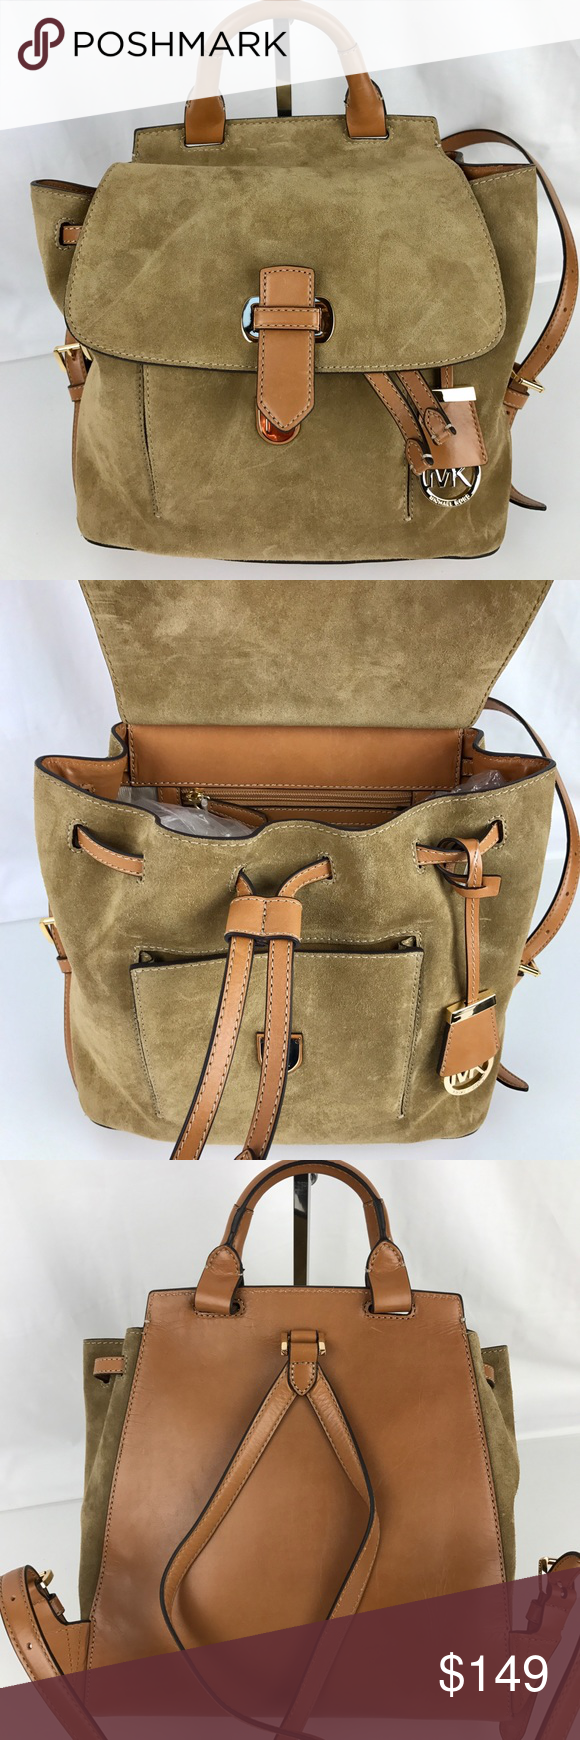 027afaccbf Michael Kors Desert Suede Romy Medium Backpack Authentic. New with Tag.  Snap on flap